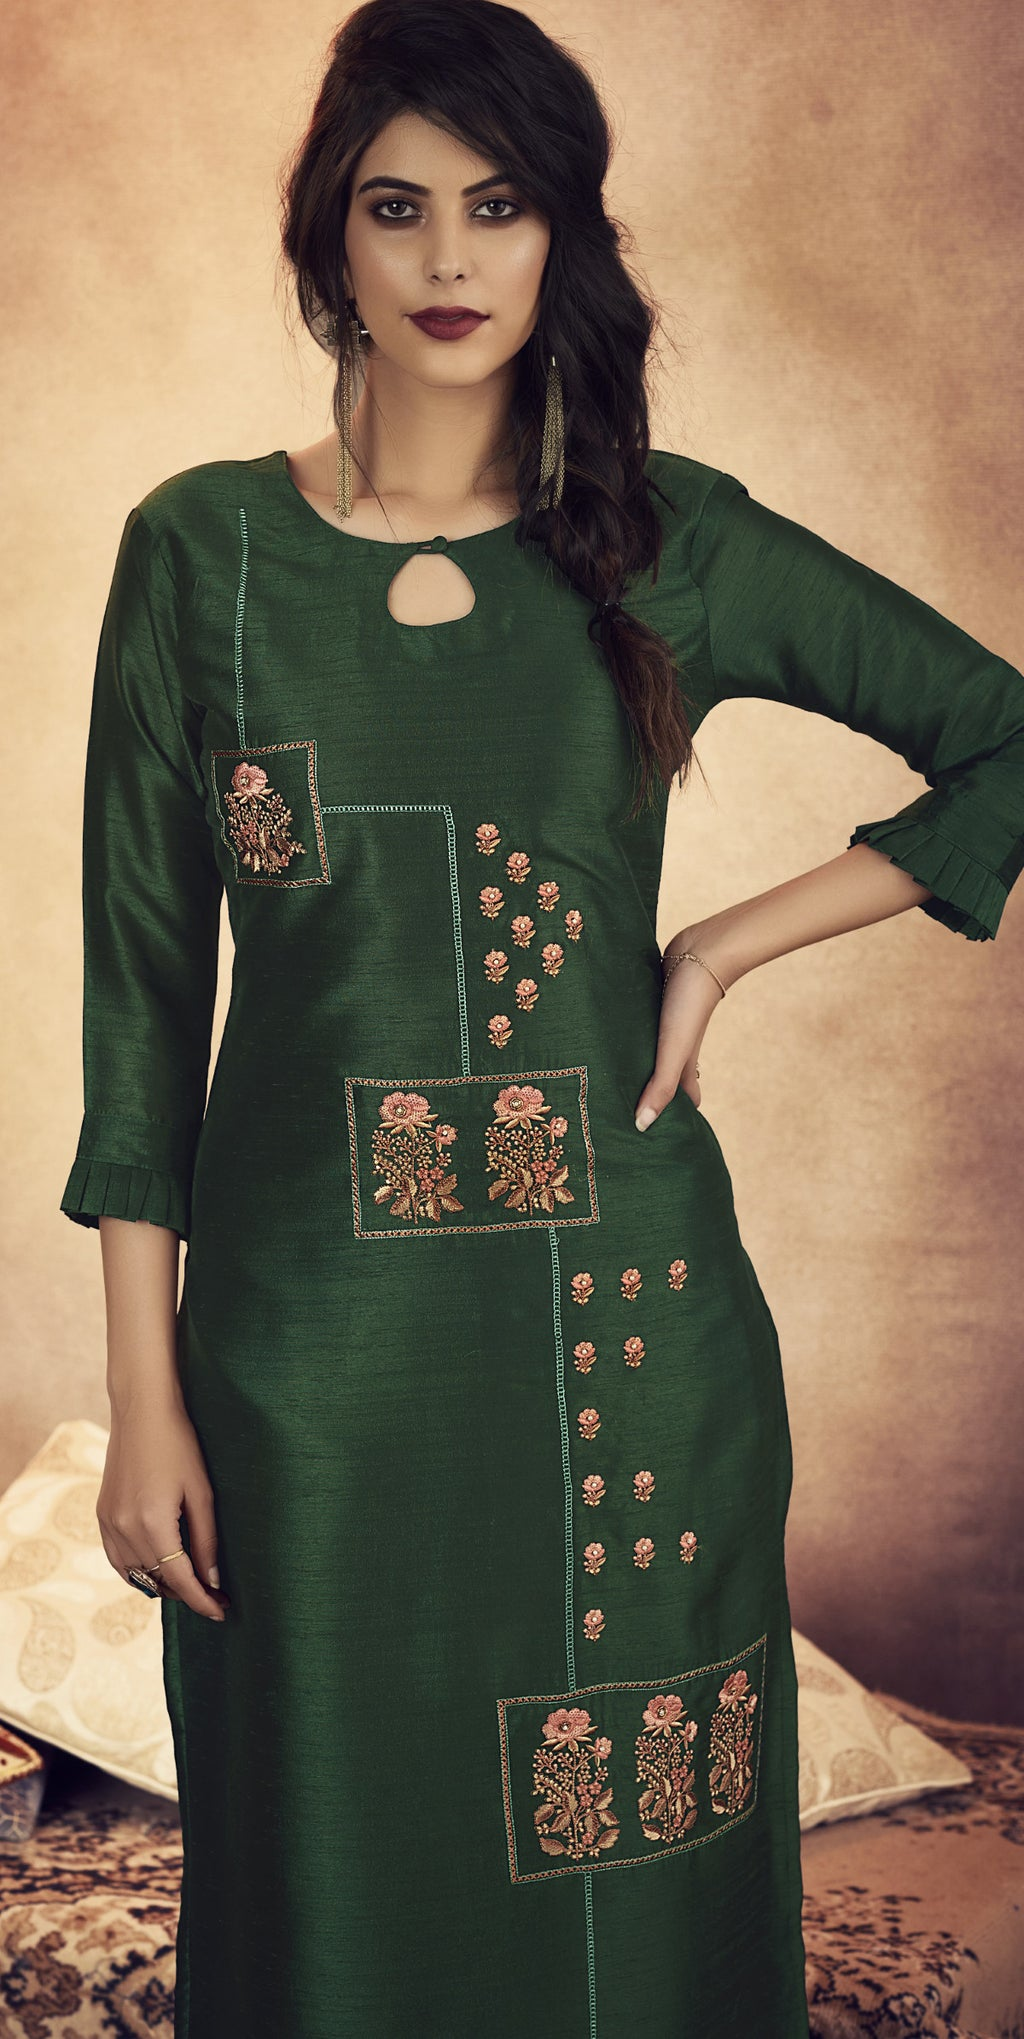 Bottle Green Color Soft Art Silk Designer Kurtis With Bottom : NYF-8315